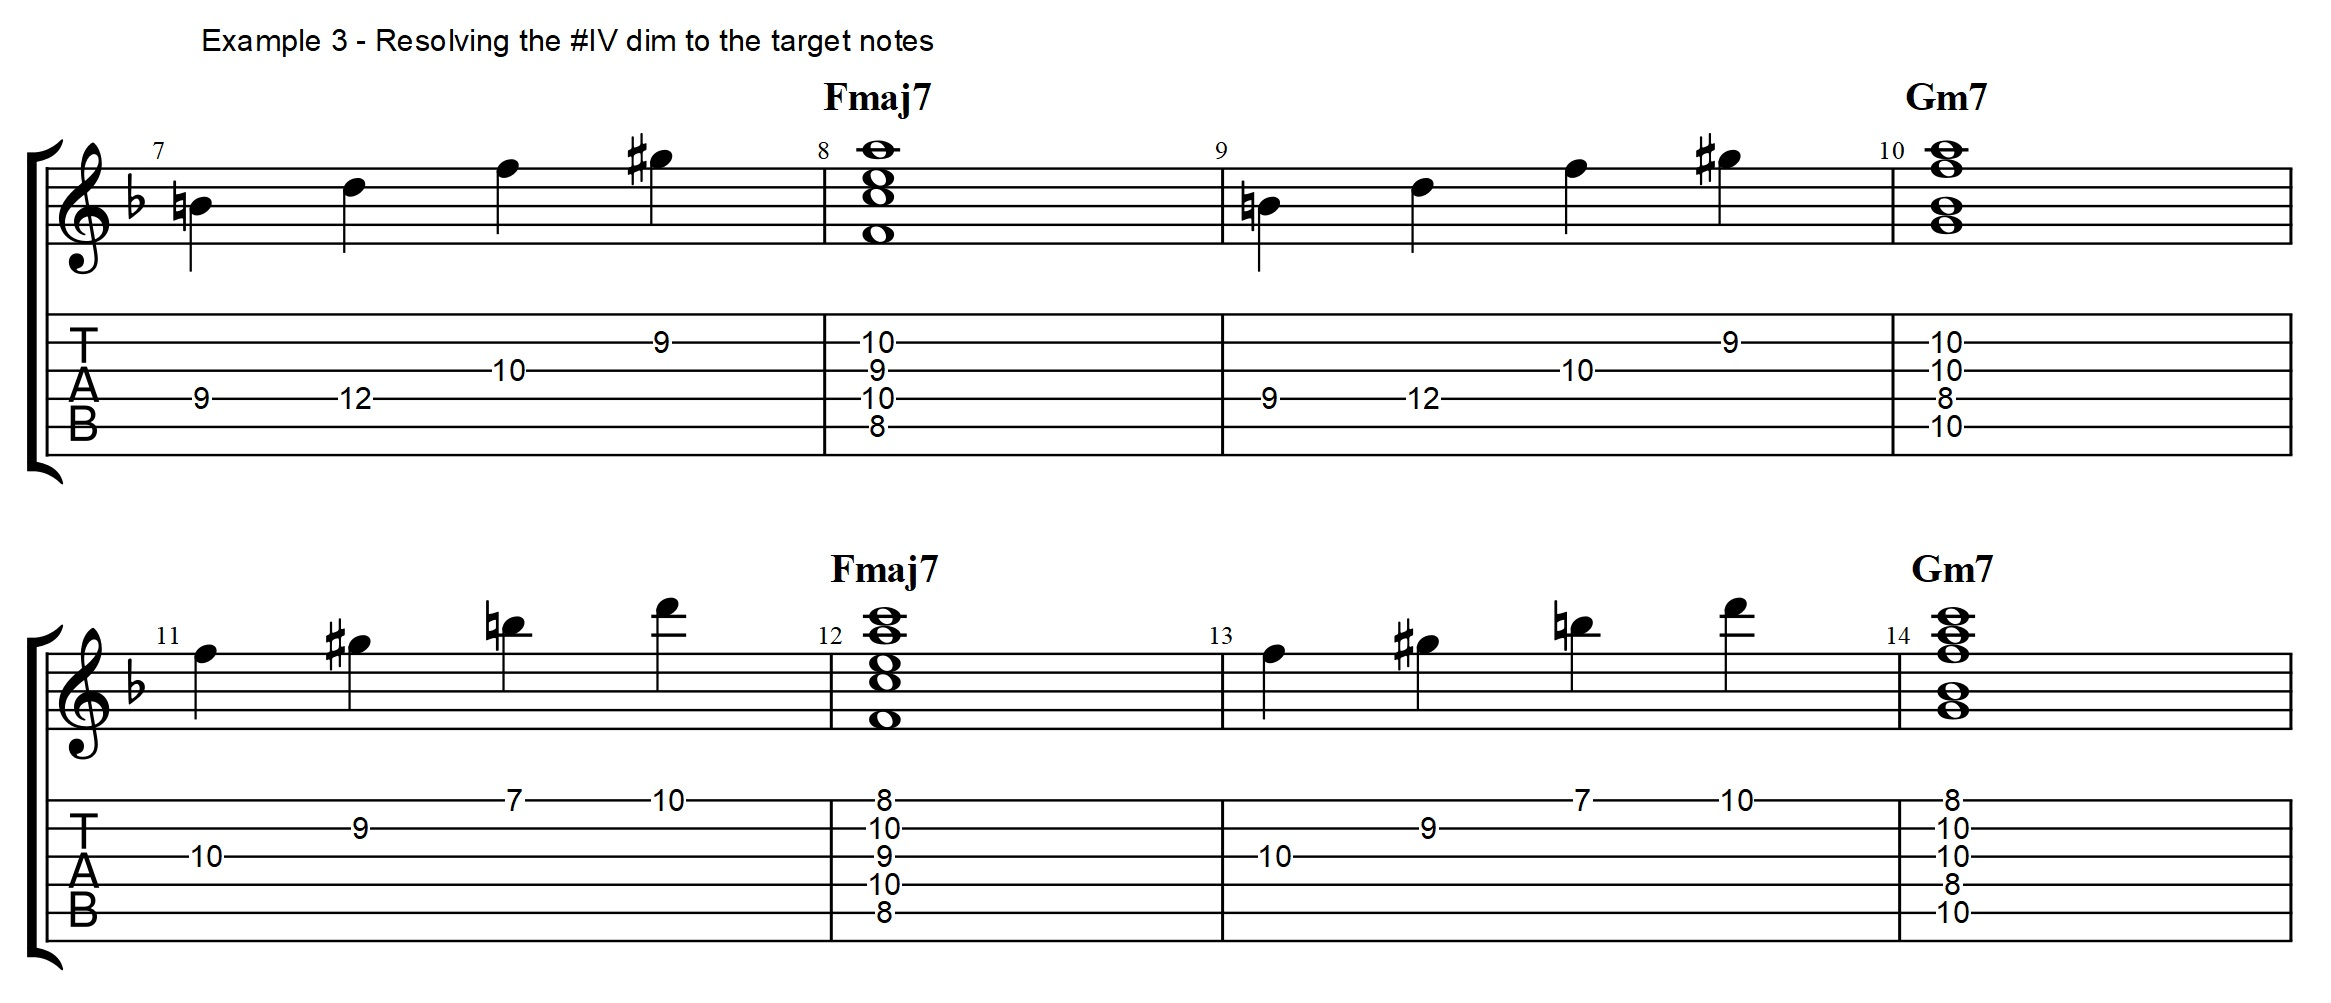 Secret to play over diminished chords jens larsen resolve the dim chord to an a or a c over the fmaj7 or gm7 in example 3 i have written out some simple exercises so you can hear how it sounds hexwebz Choice Image